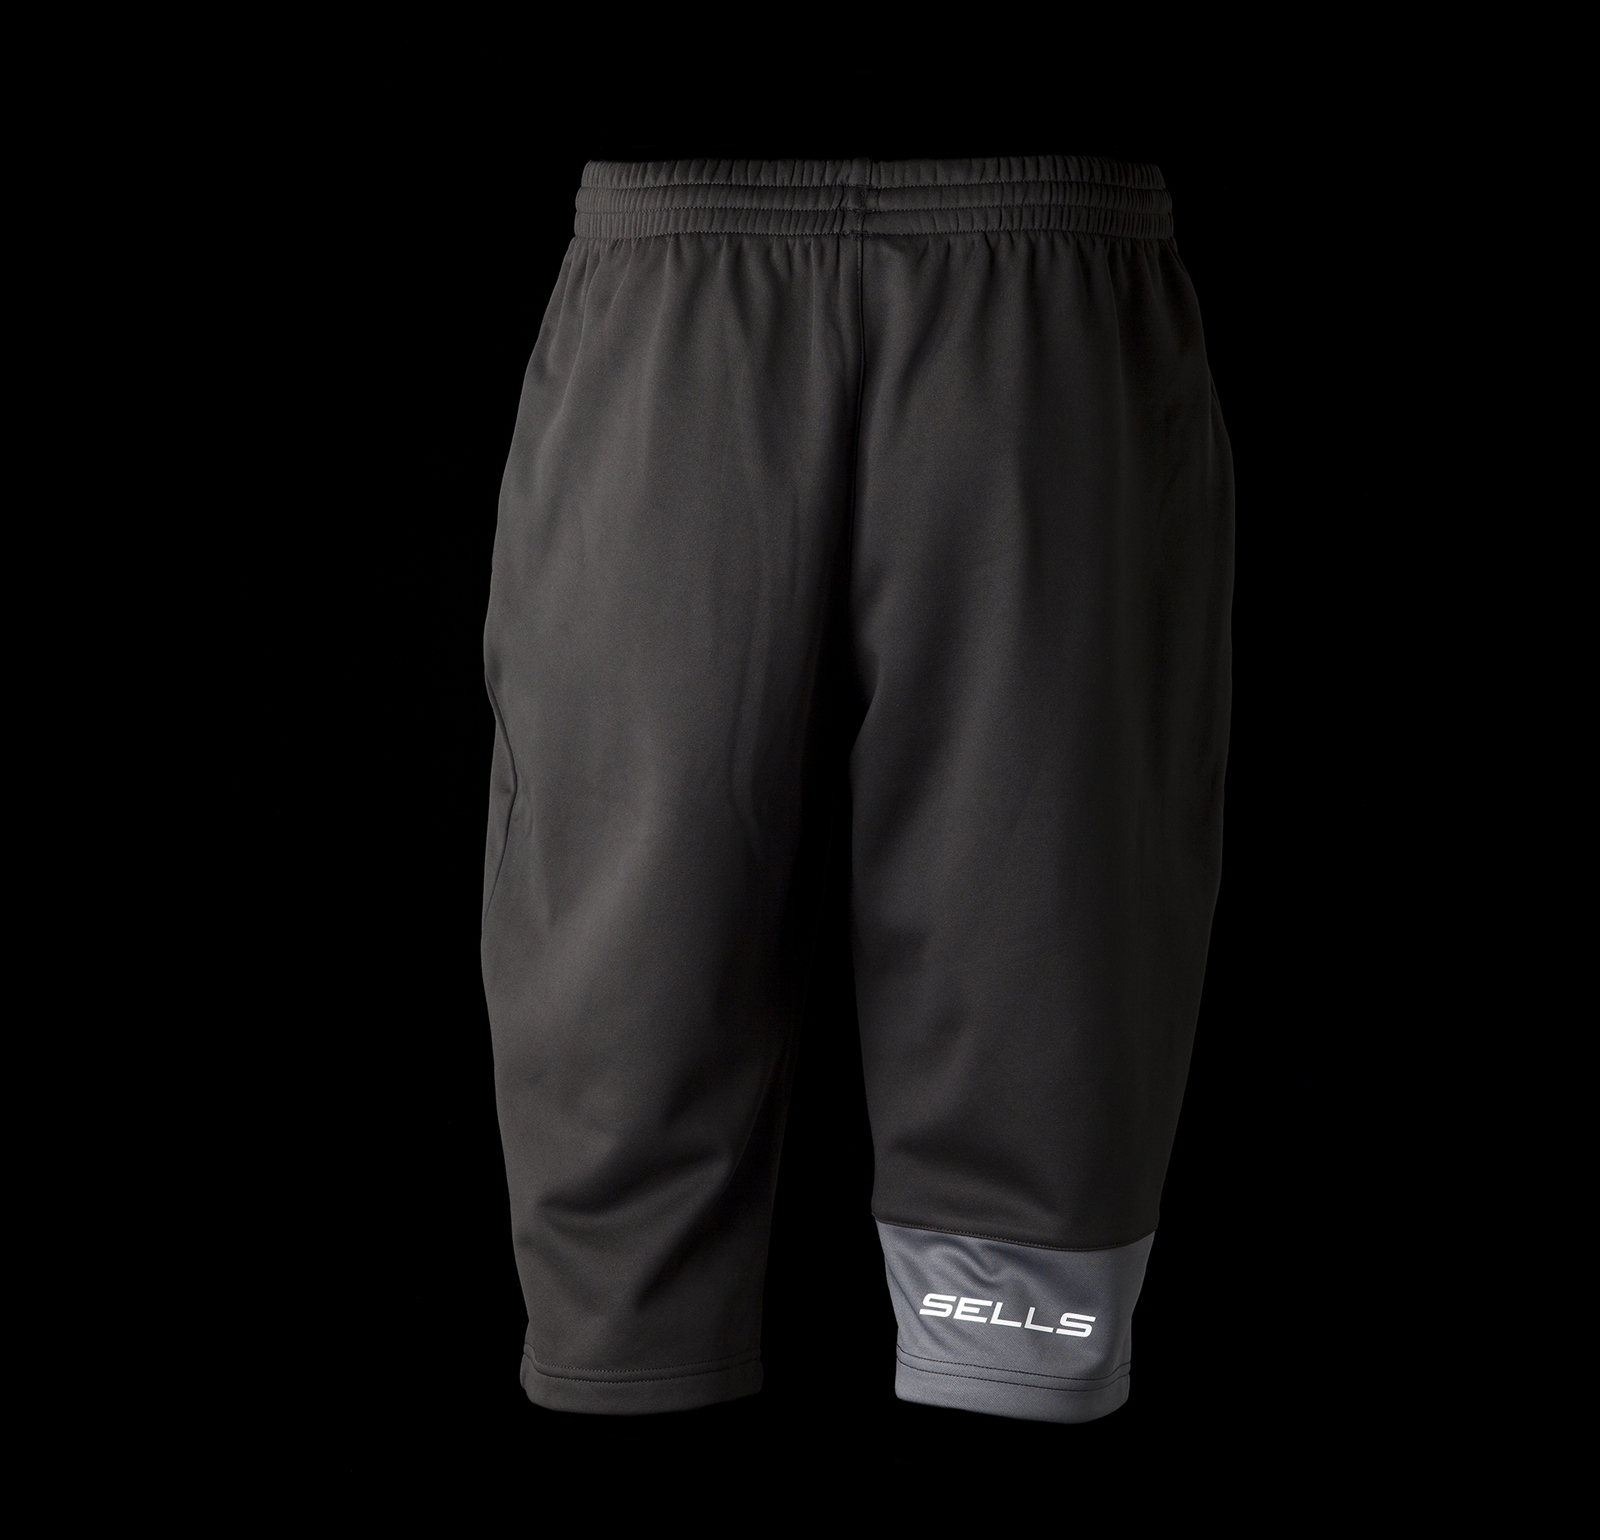 excel-3-4-pant-promo-37